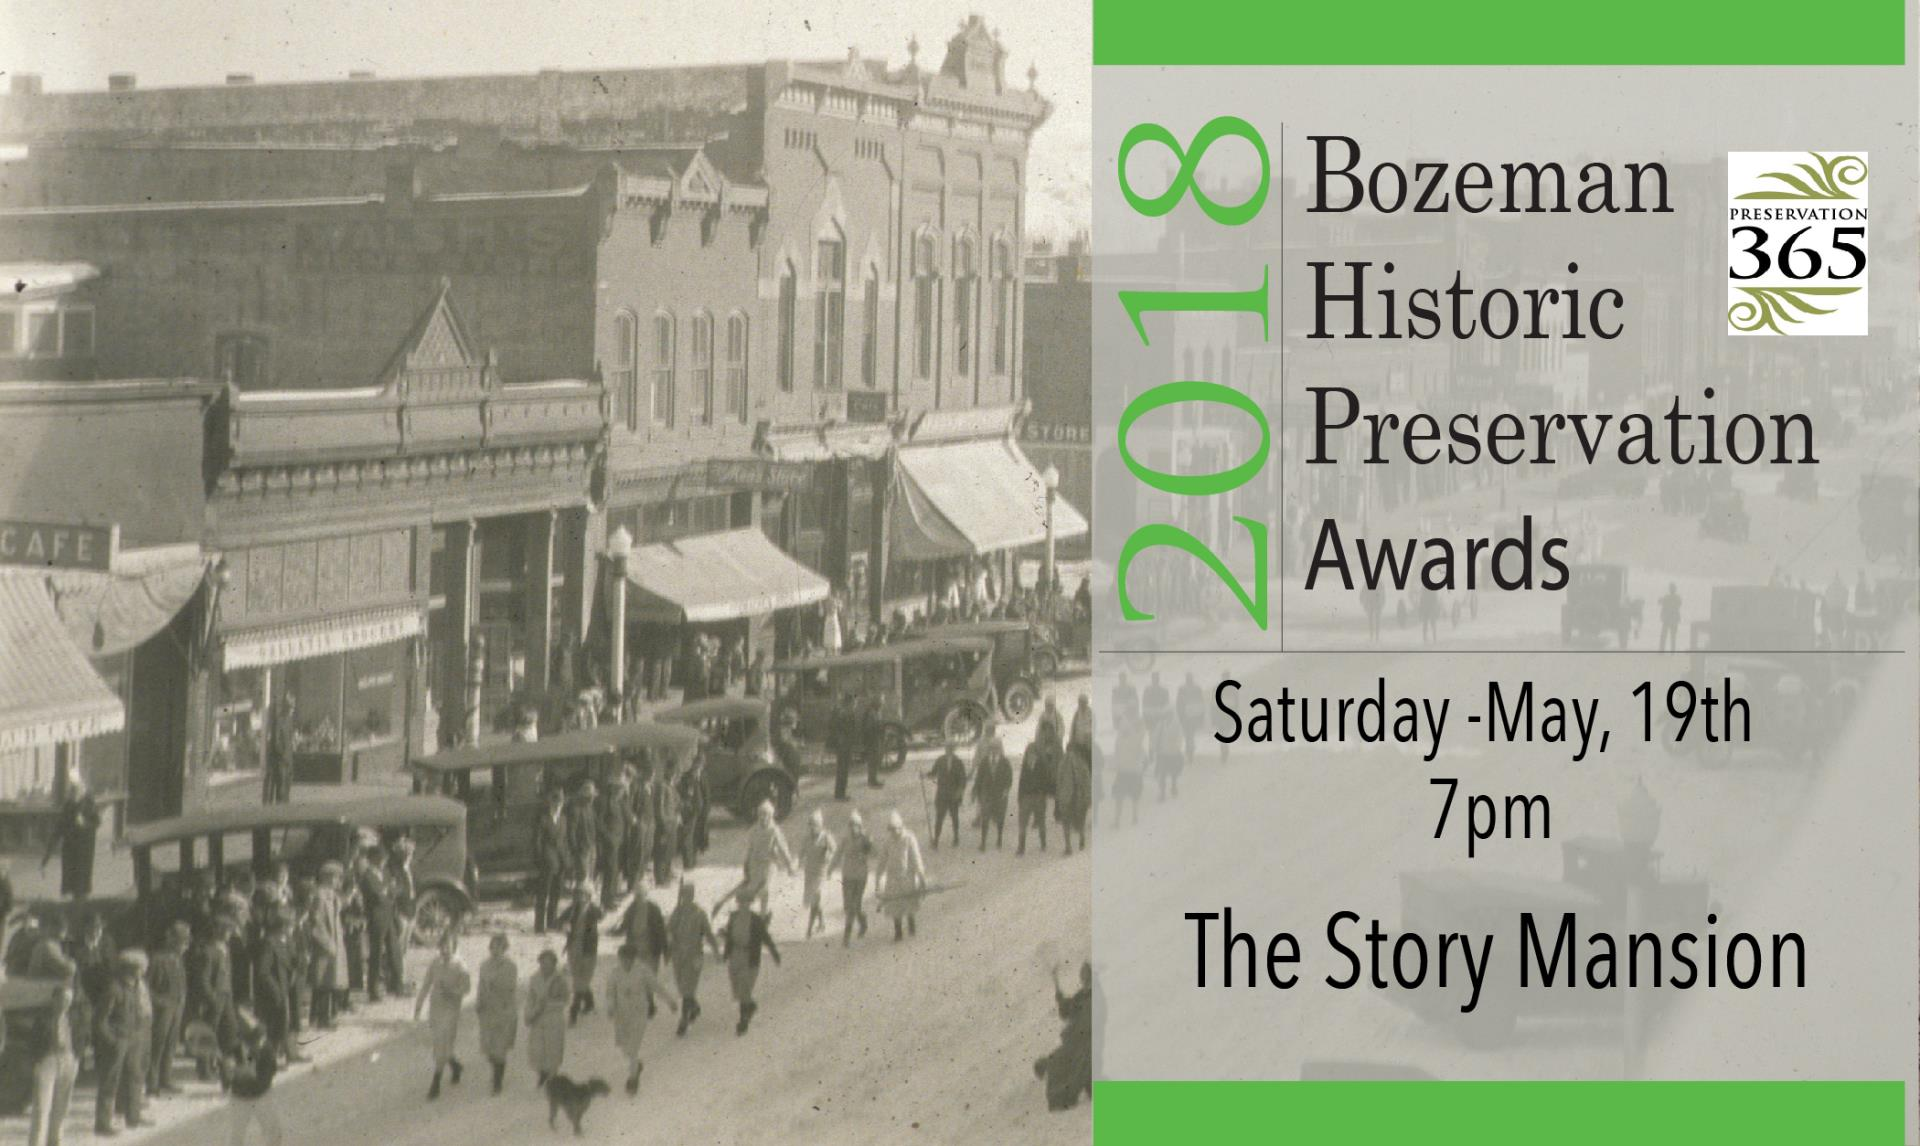 2018 Bozeman Historic Preservation Awards Saturday May 19th 7 PM The Story Mansion